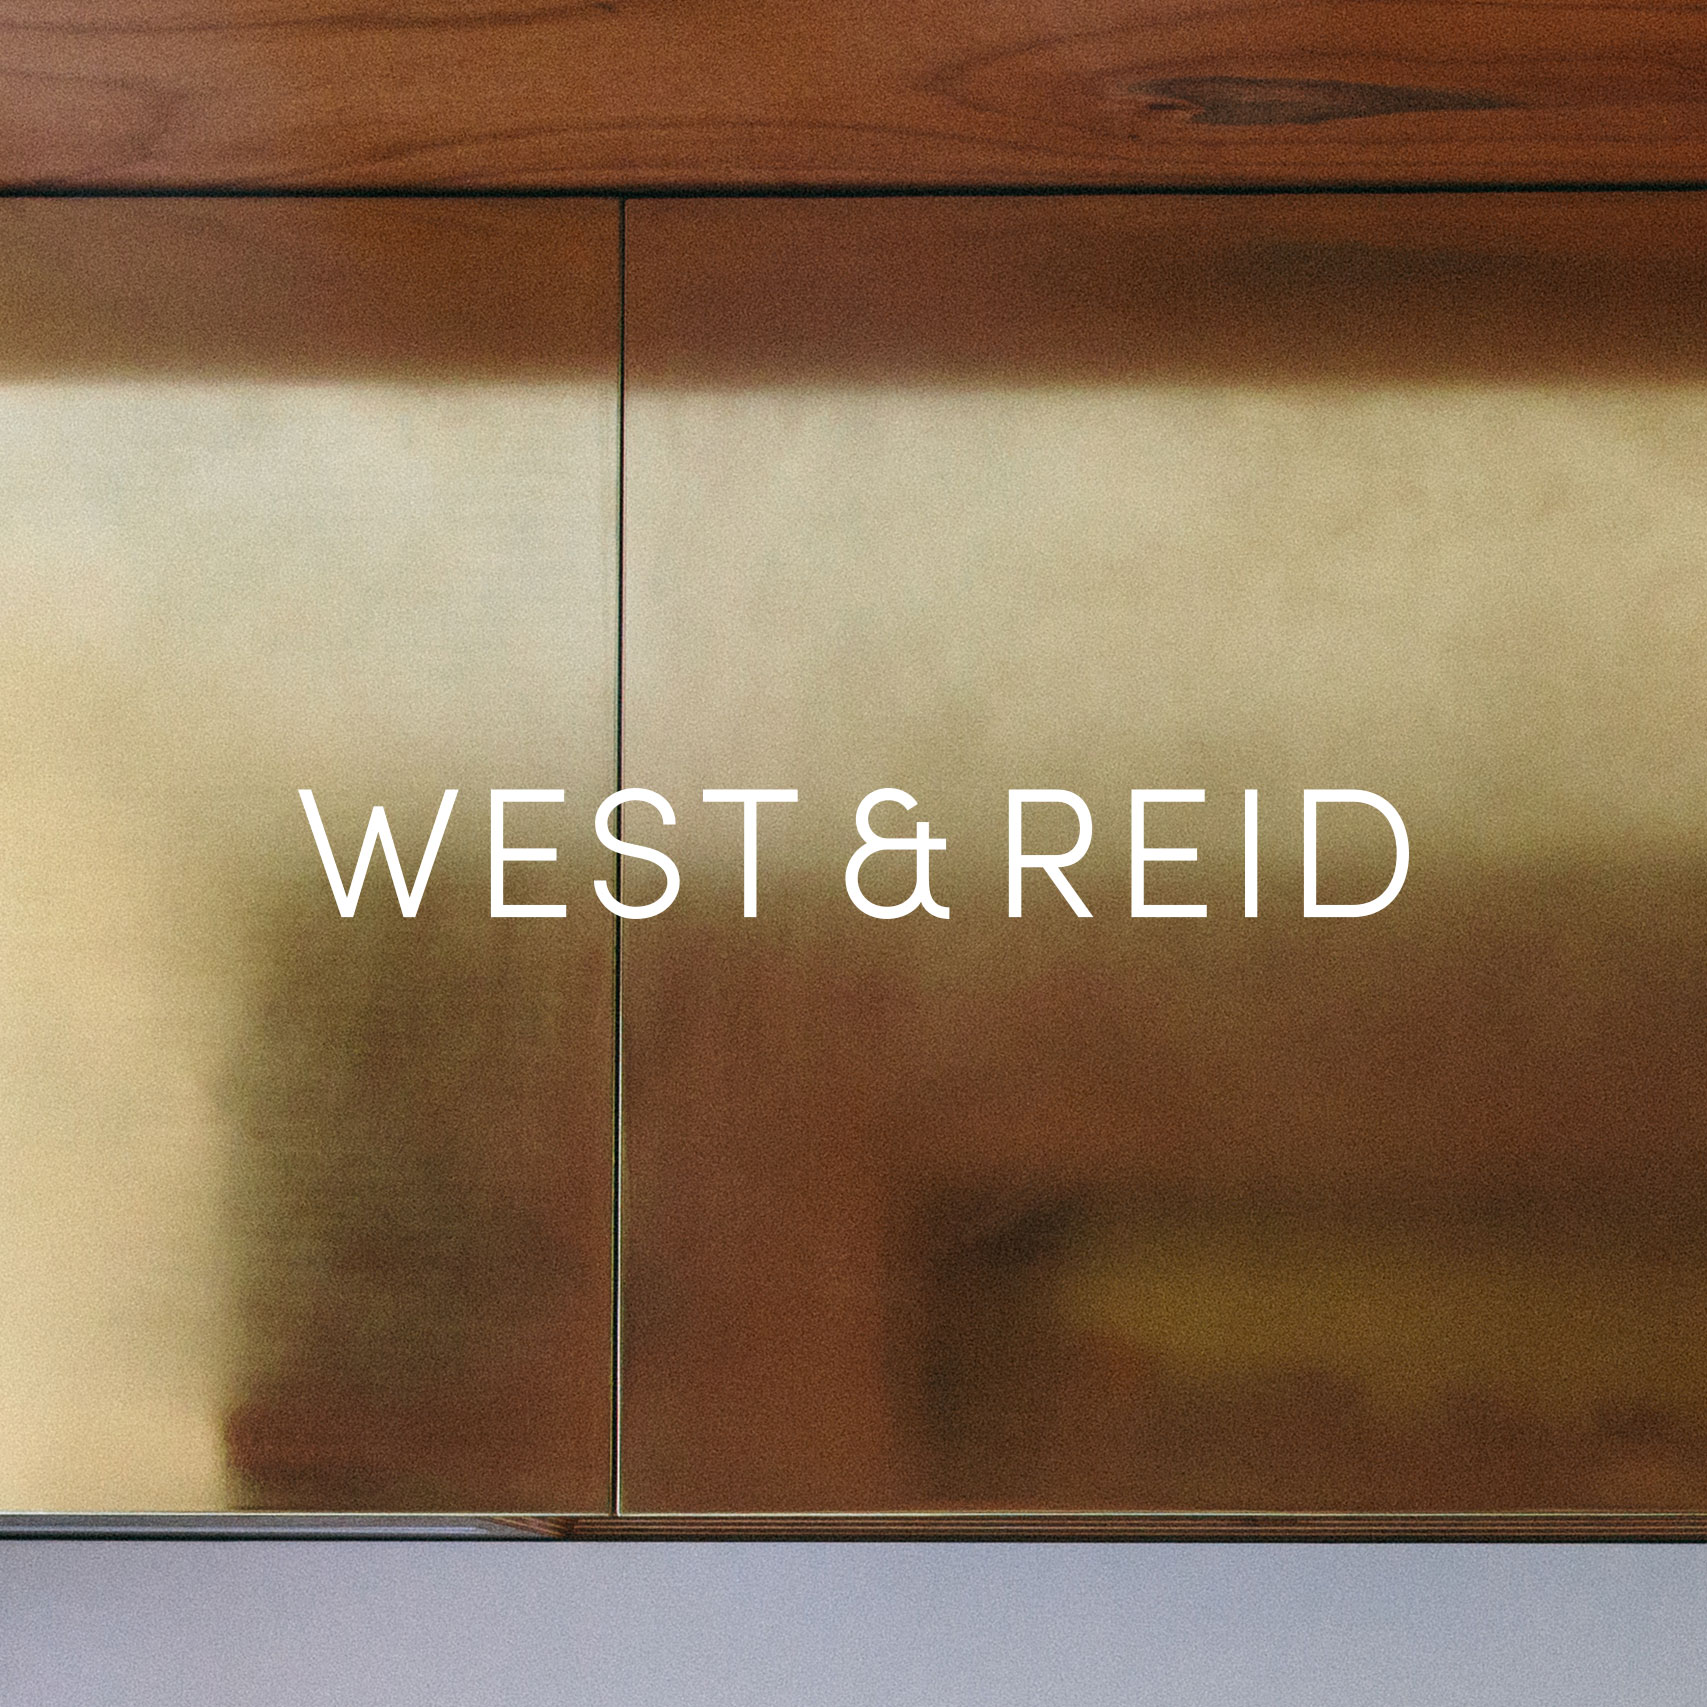 Small business logo design for West & Reid London